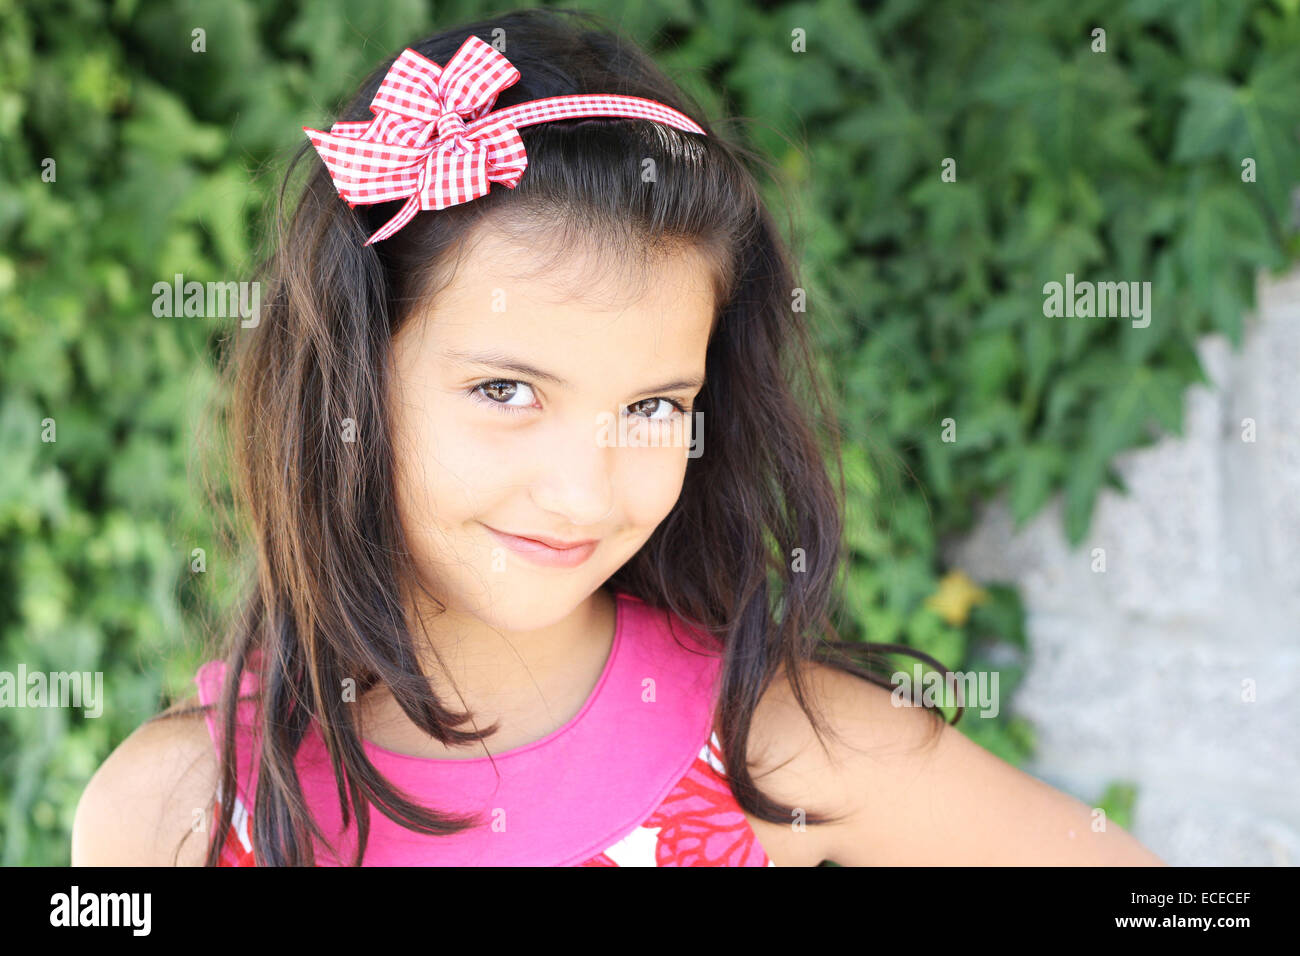 Sweet smiling little girl (6-7) with long dark hair on green ivy background - Stock Image